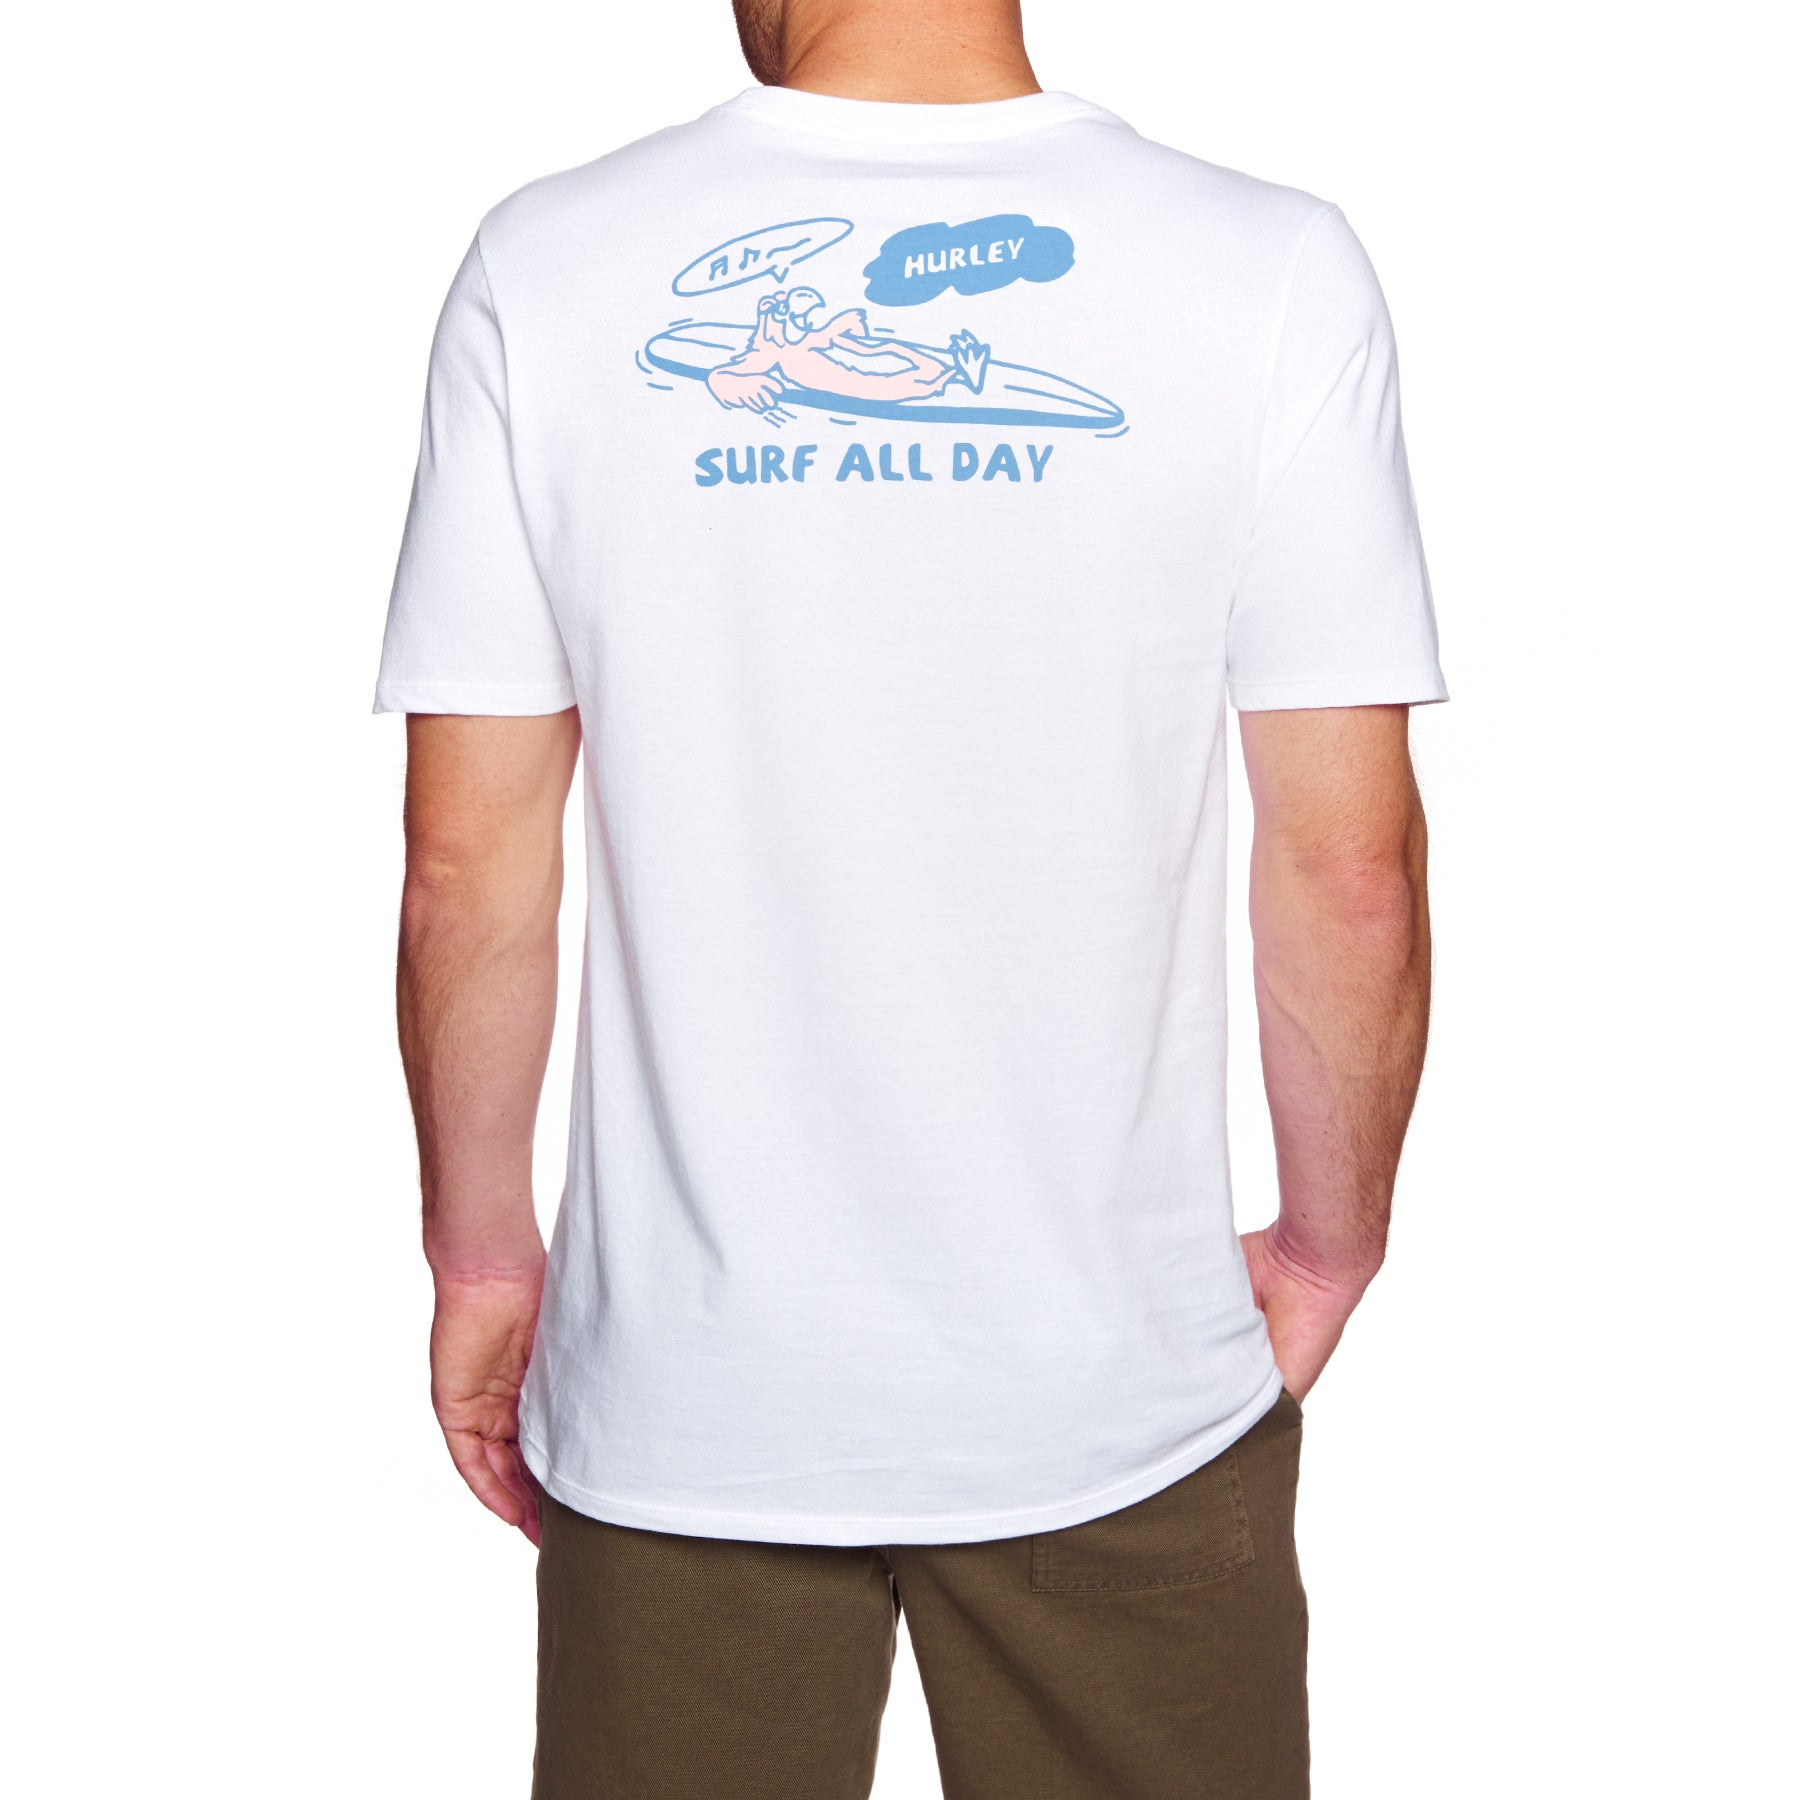 Hurley Surf All Day Short Sleeve T-Shirt - White